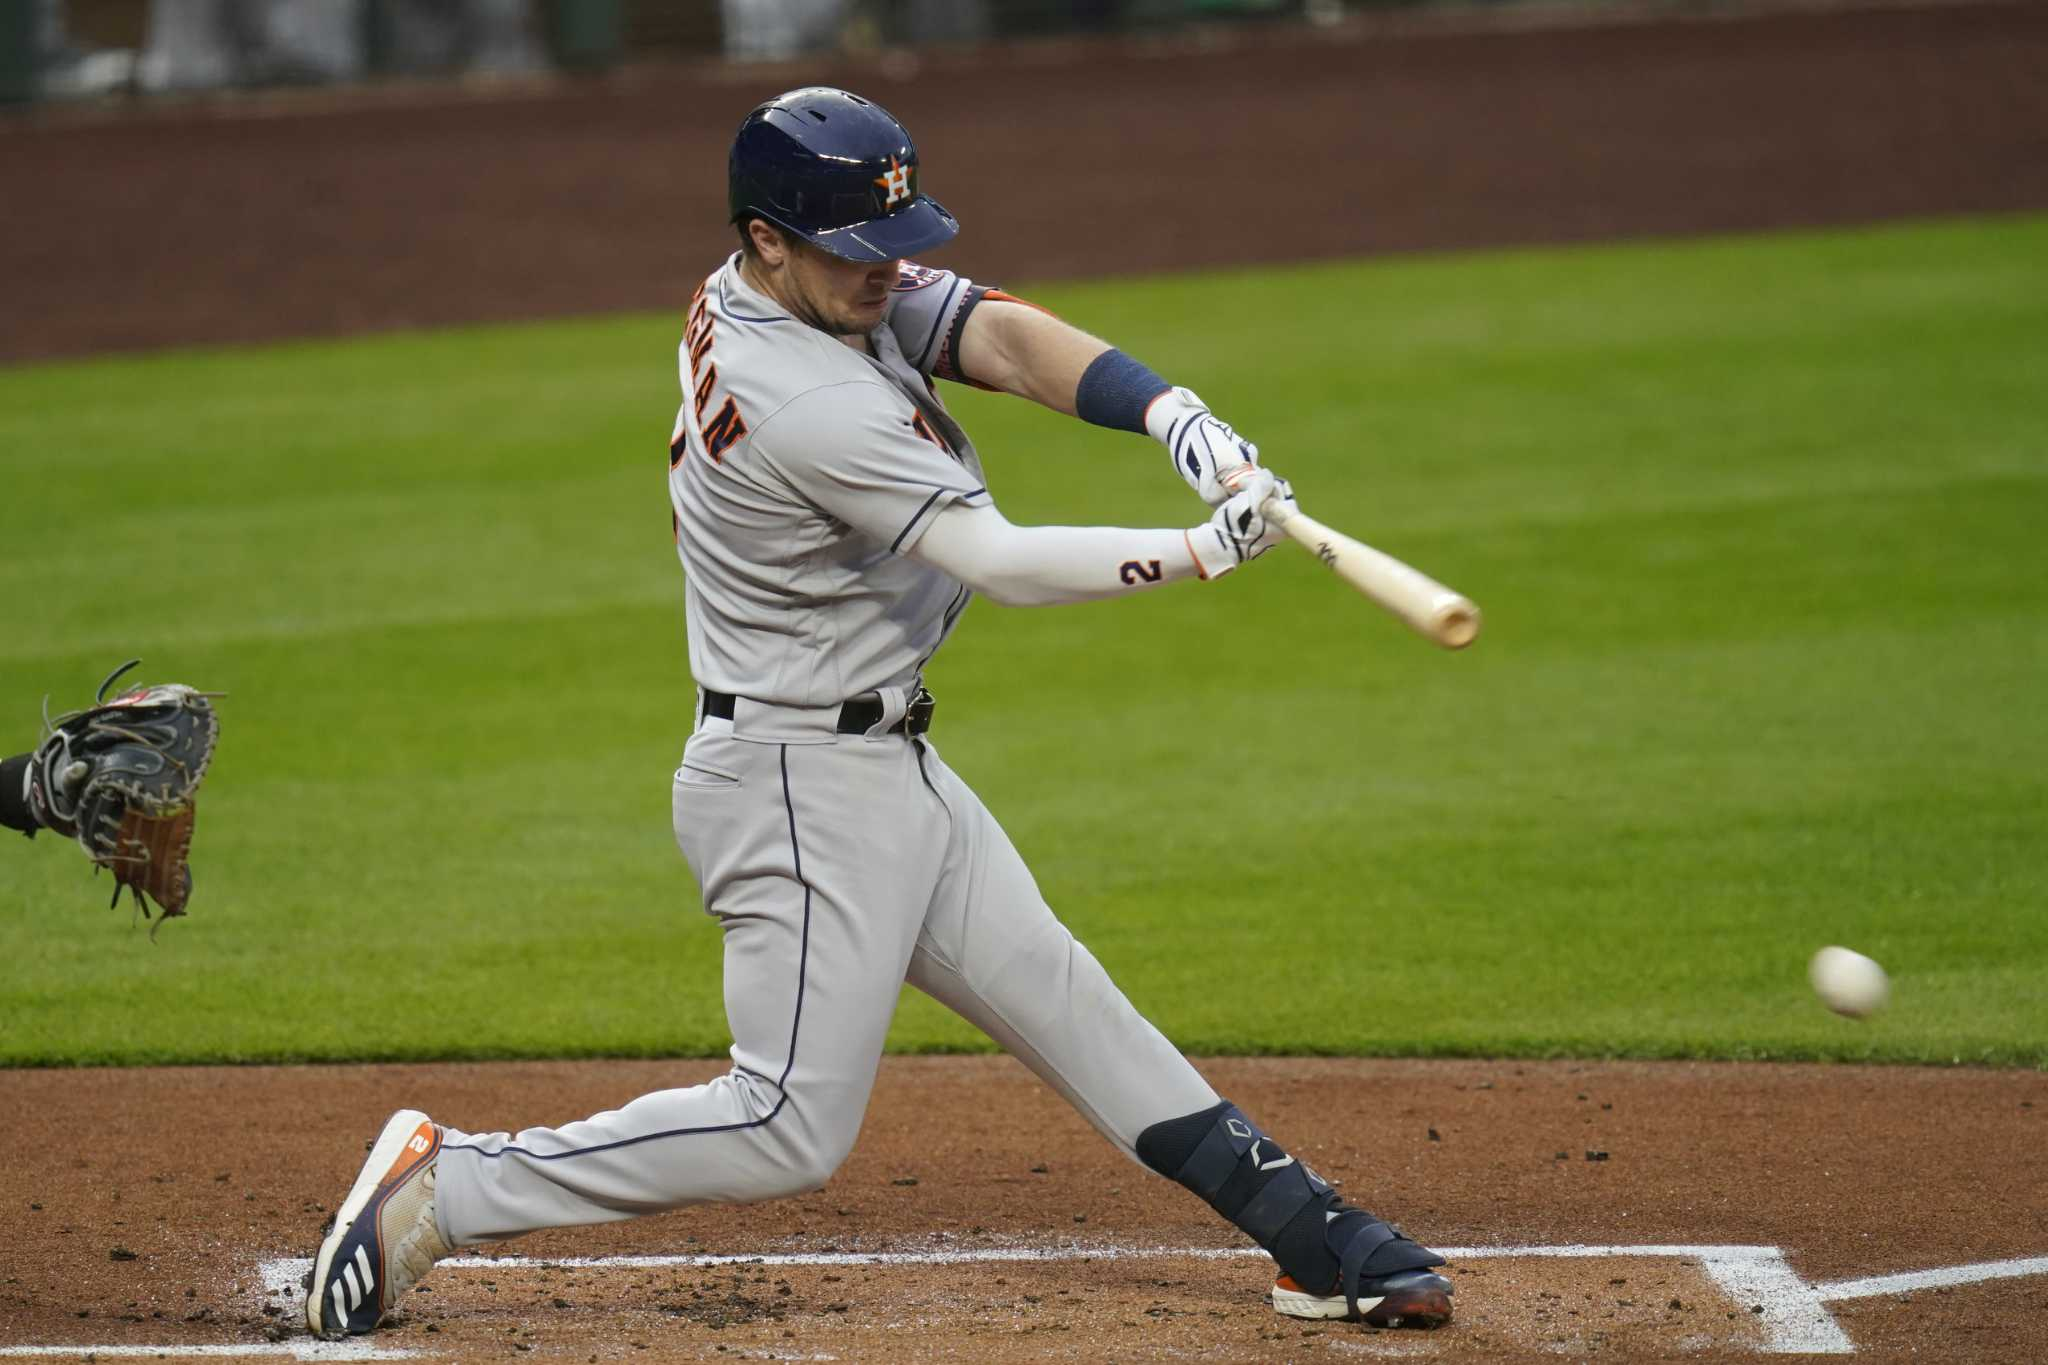 Astros insider: Alex Bregman looking for just one good swing - Houston Chronicle